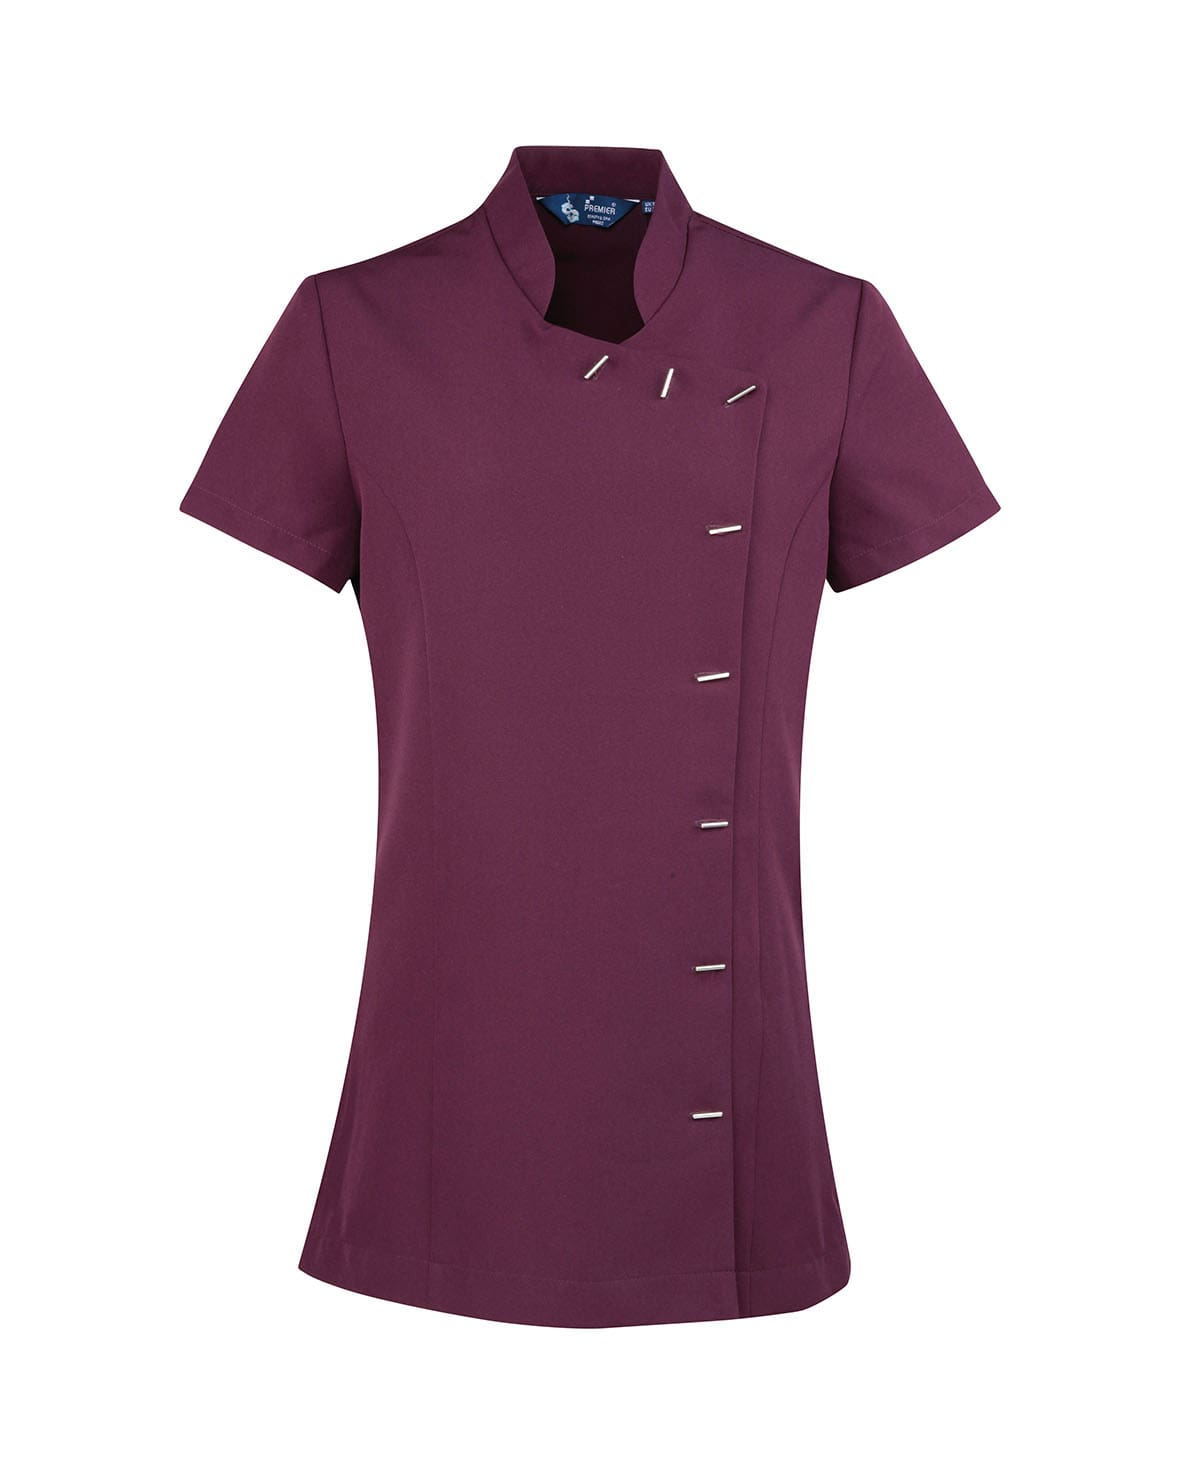 Smart, Functional and Stylish Beauty and Spa Workwear Tunics that can be Branded with Your Design or Logo